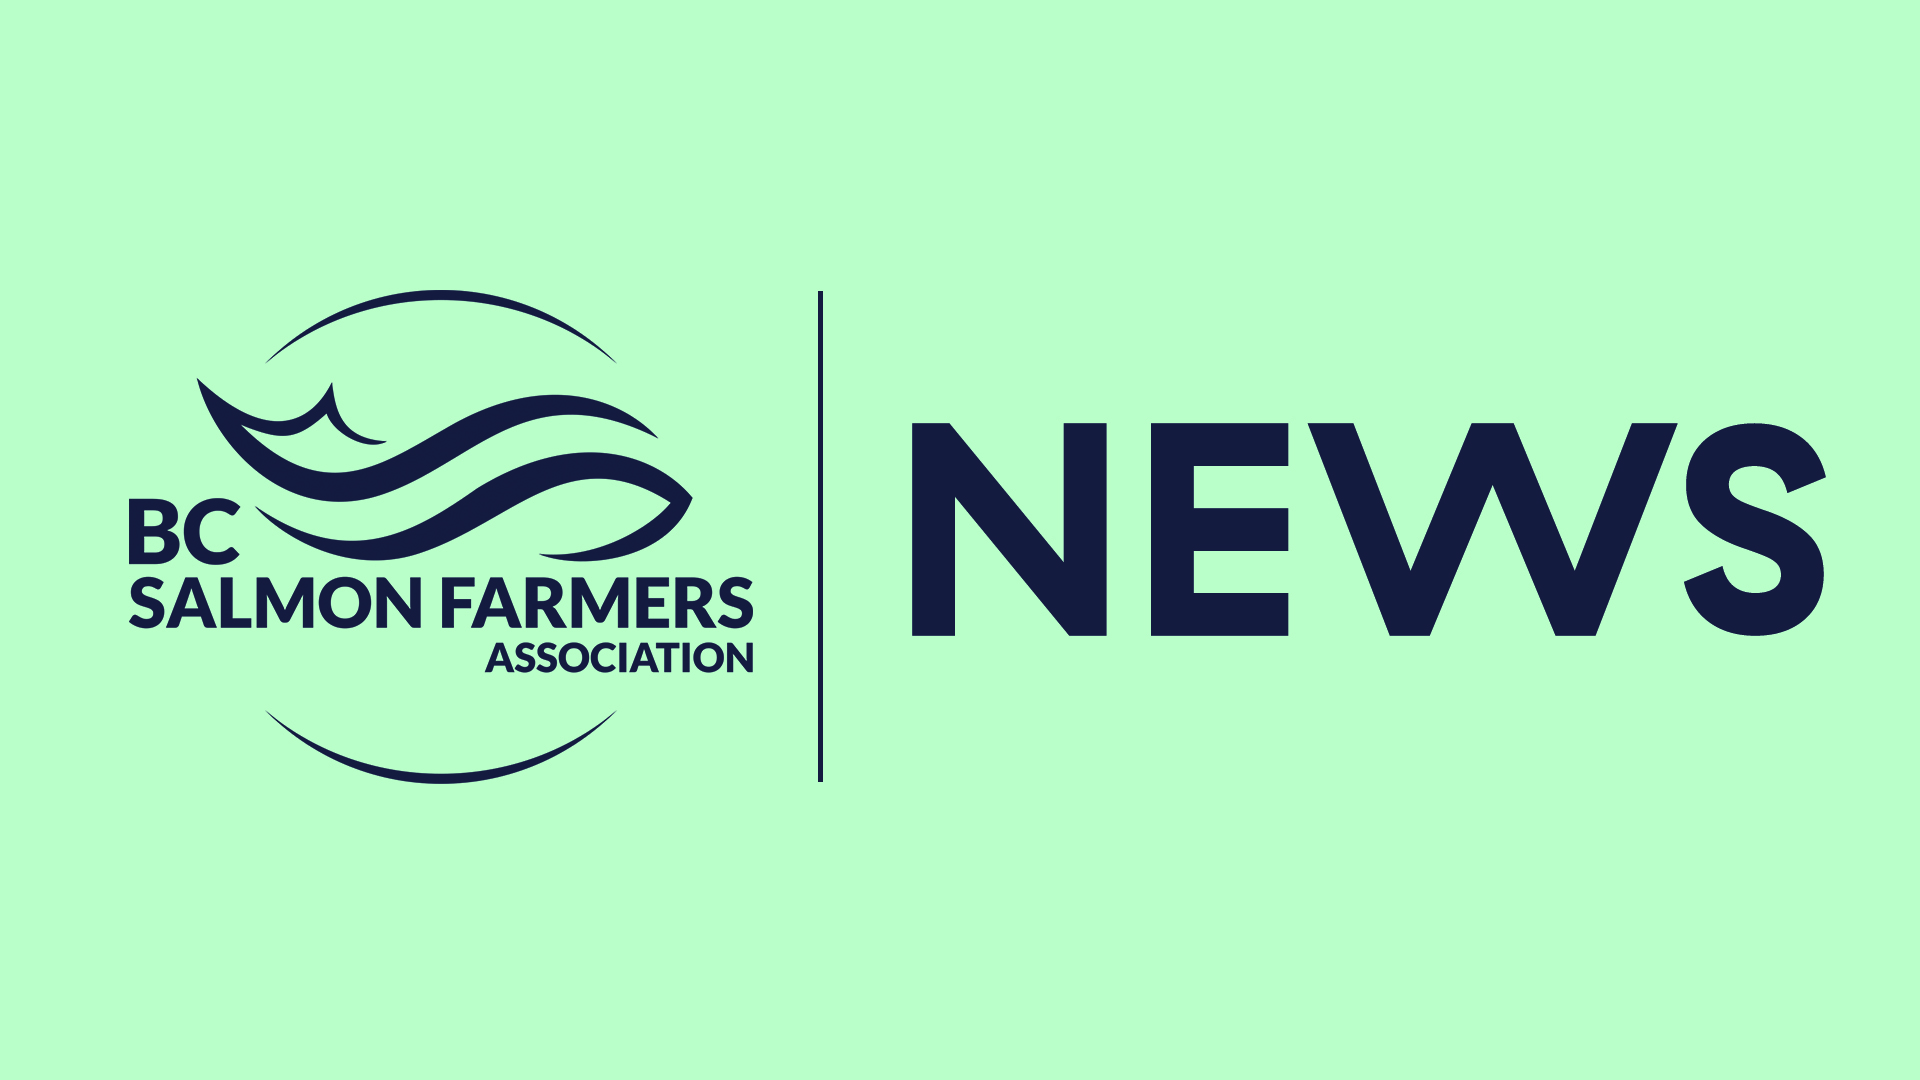 Statement from the BC Salmon Farmers Association in response to DFO's PRV Policy decision